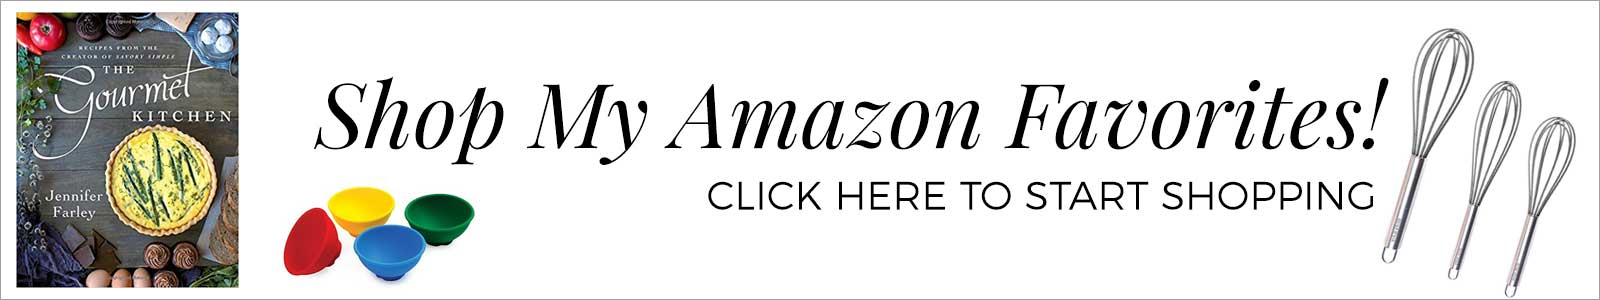 Shop The Savory Simple Amazon Store - Banner